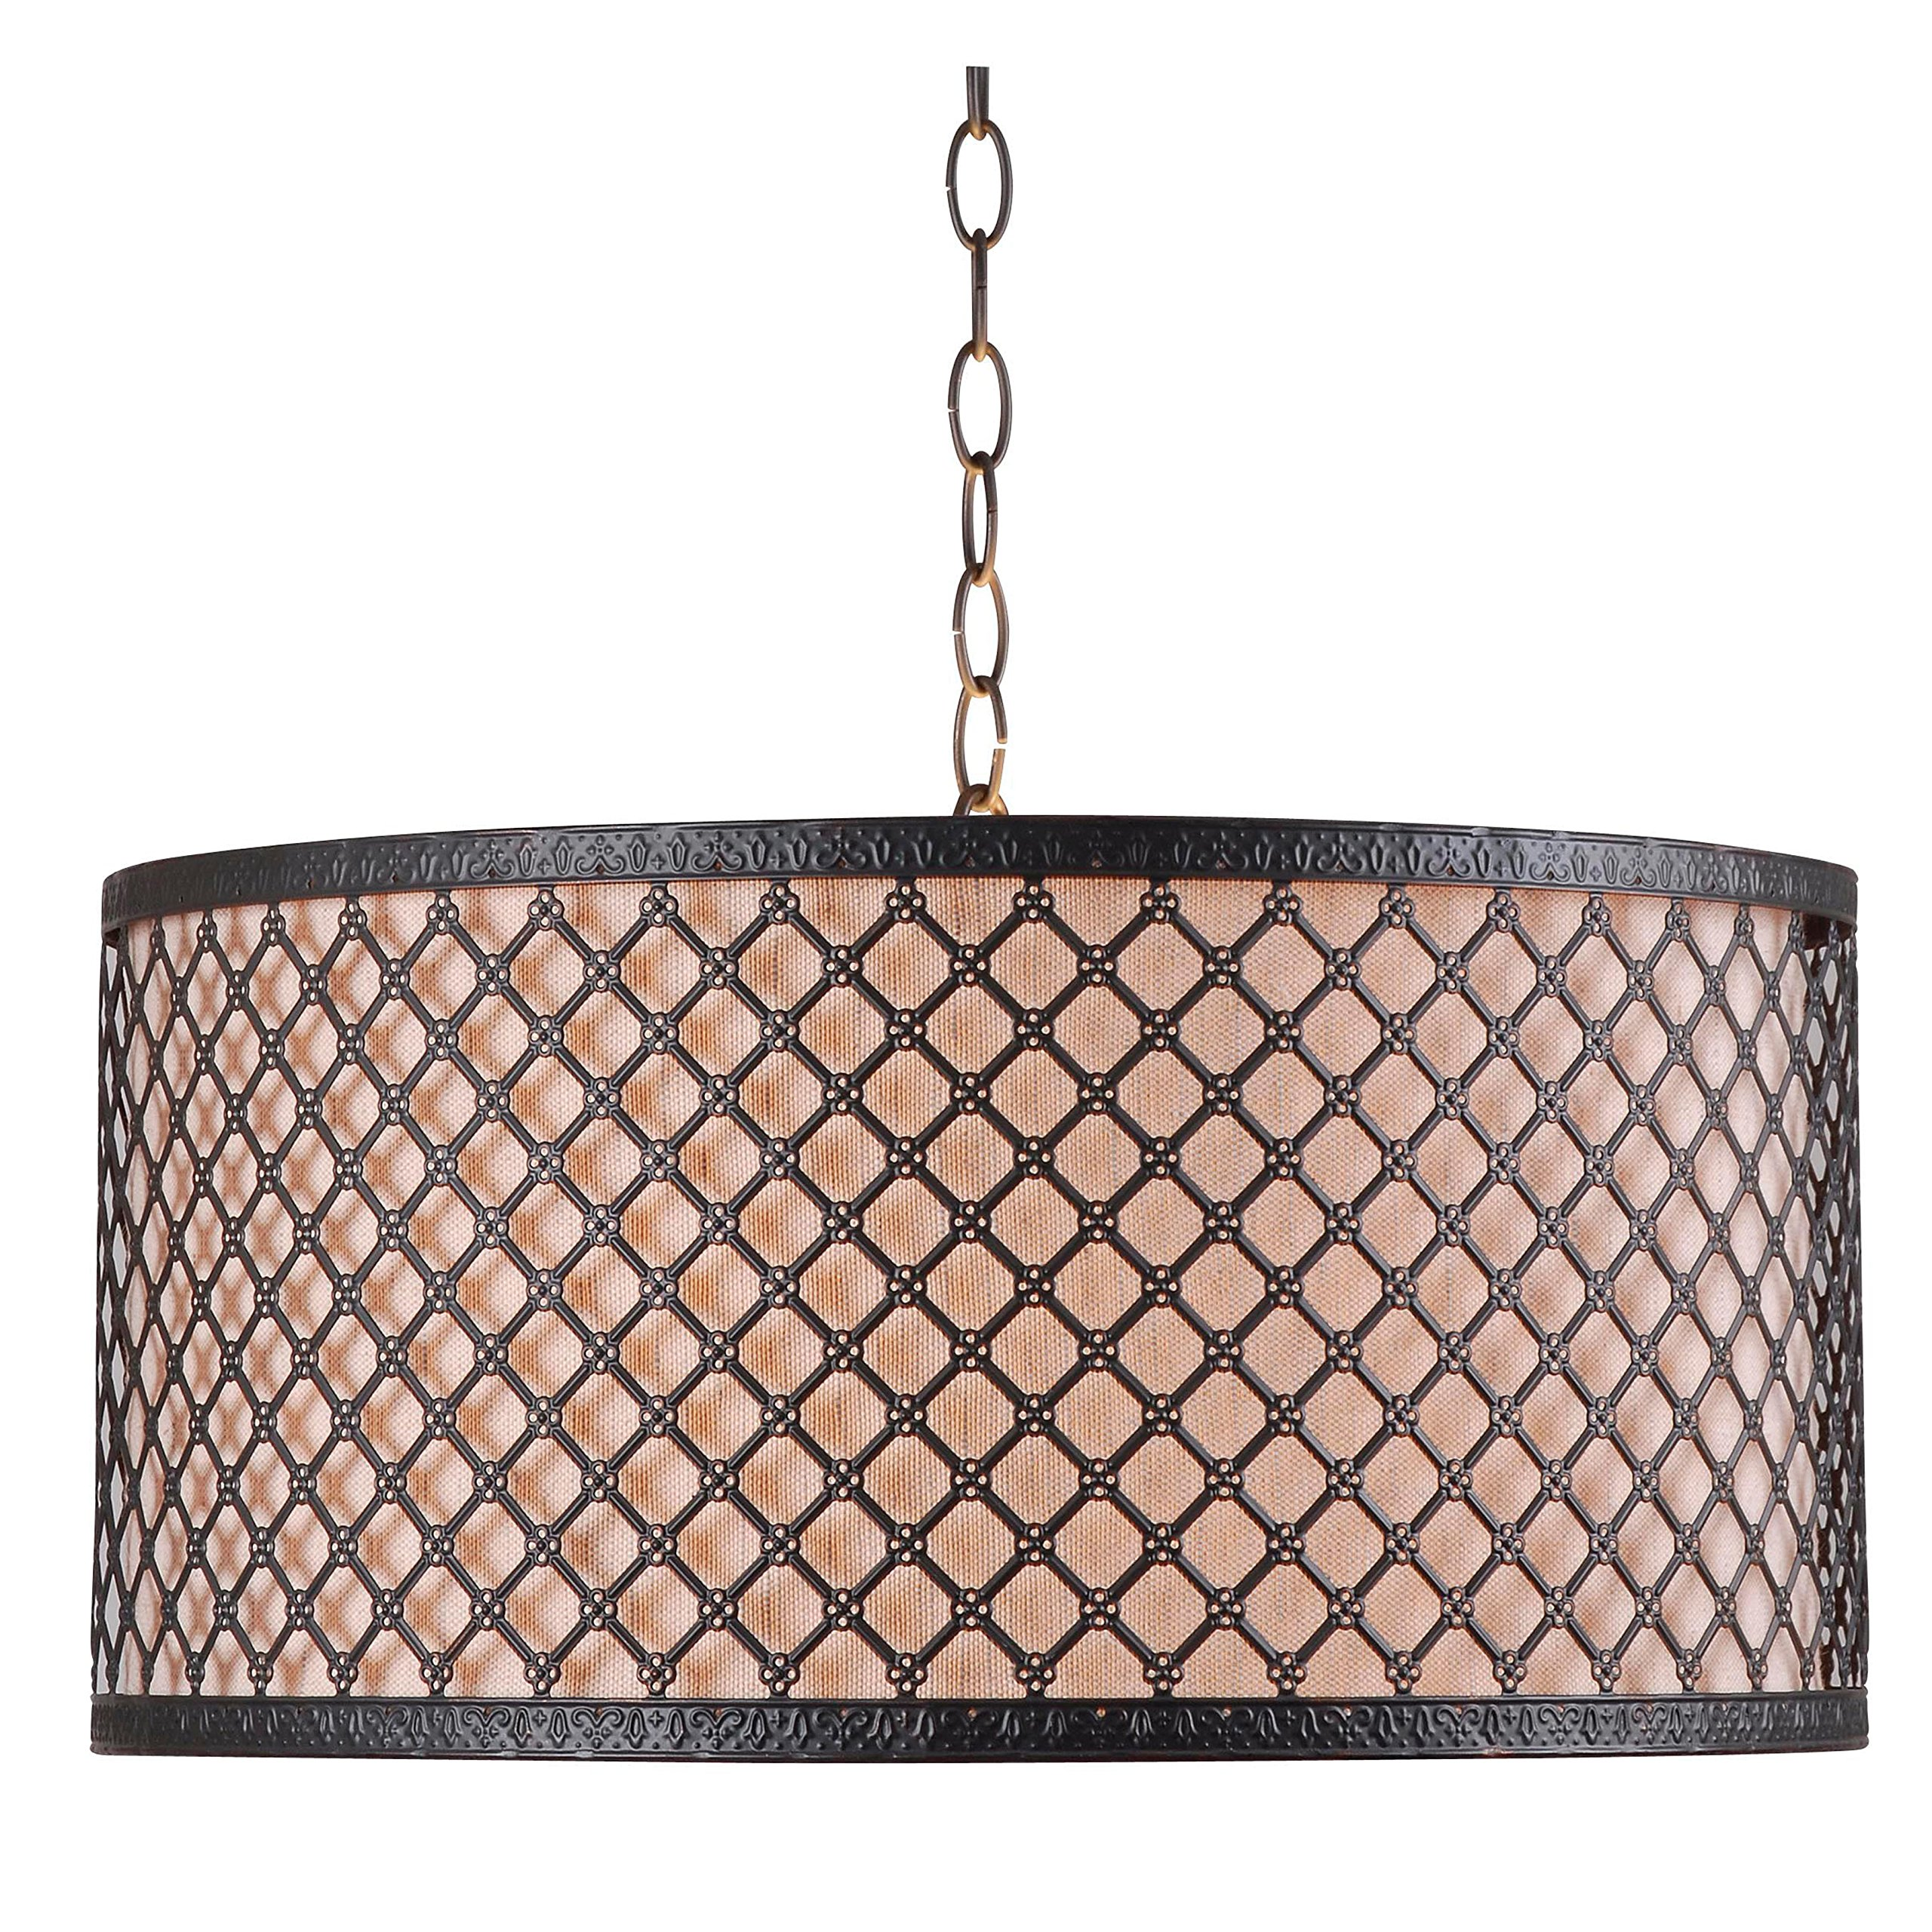 Kenroy Home 93312BRZ Hawthorn 3-Light Pendant, Bronze Finish by Kenroy Home